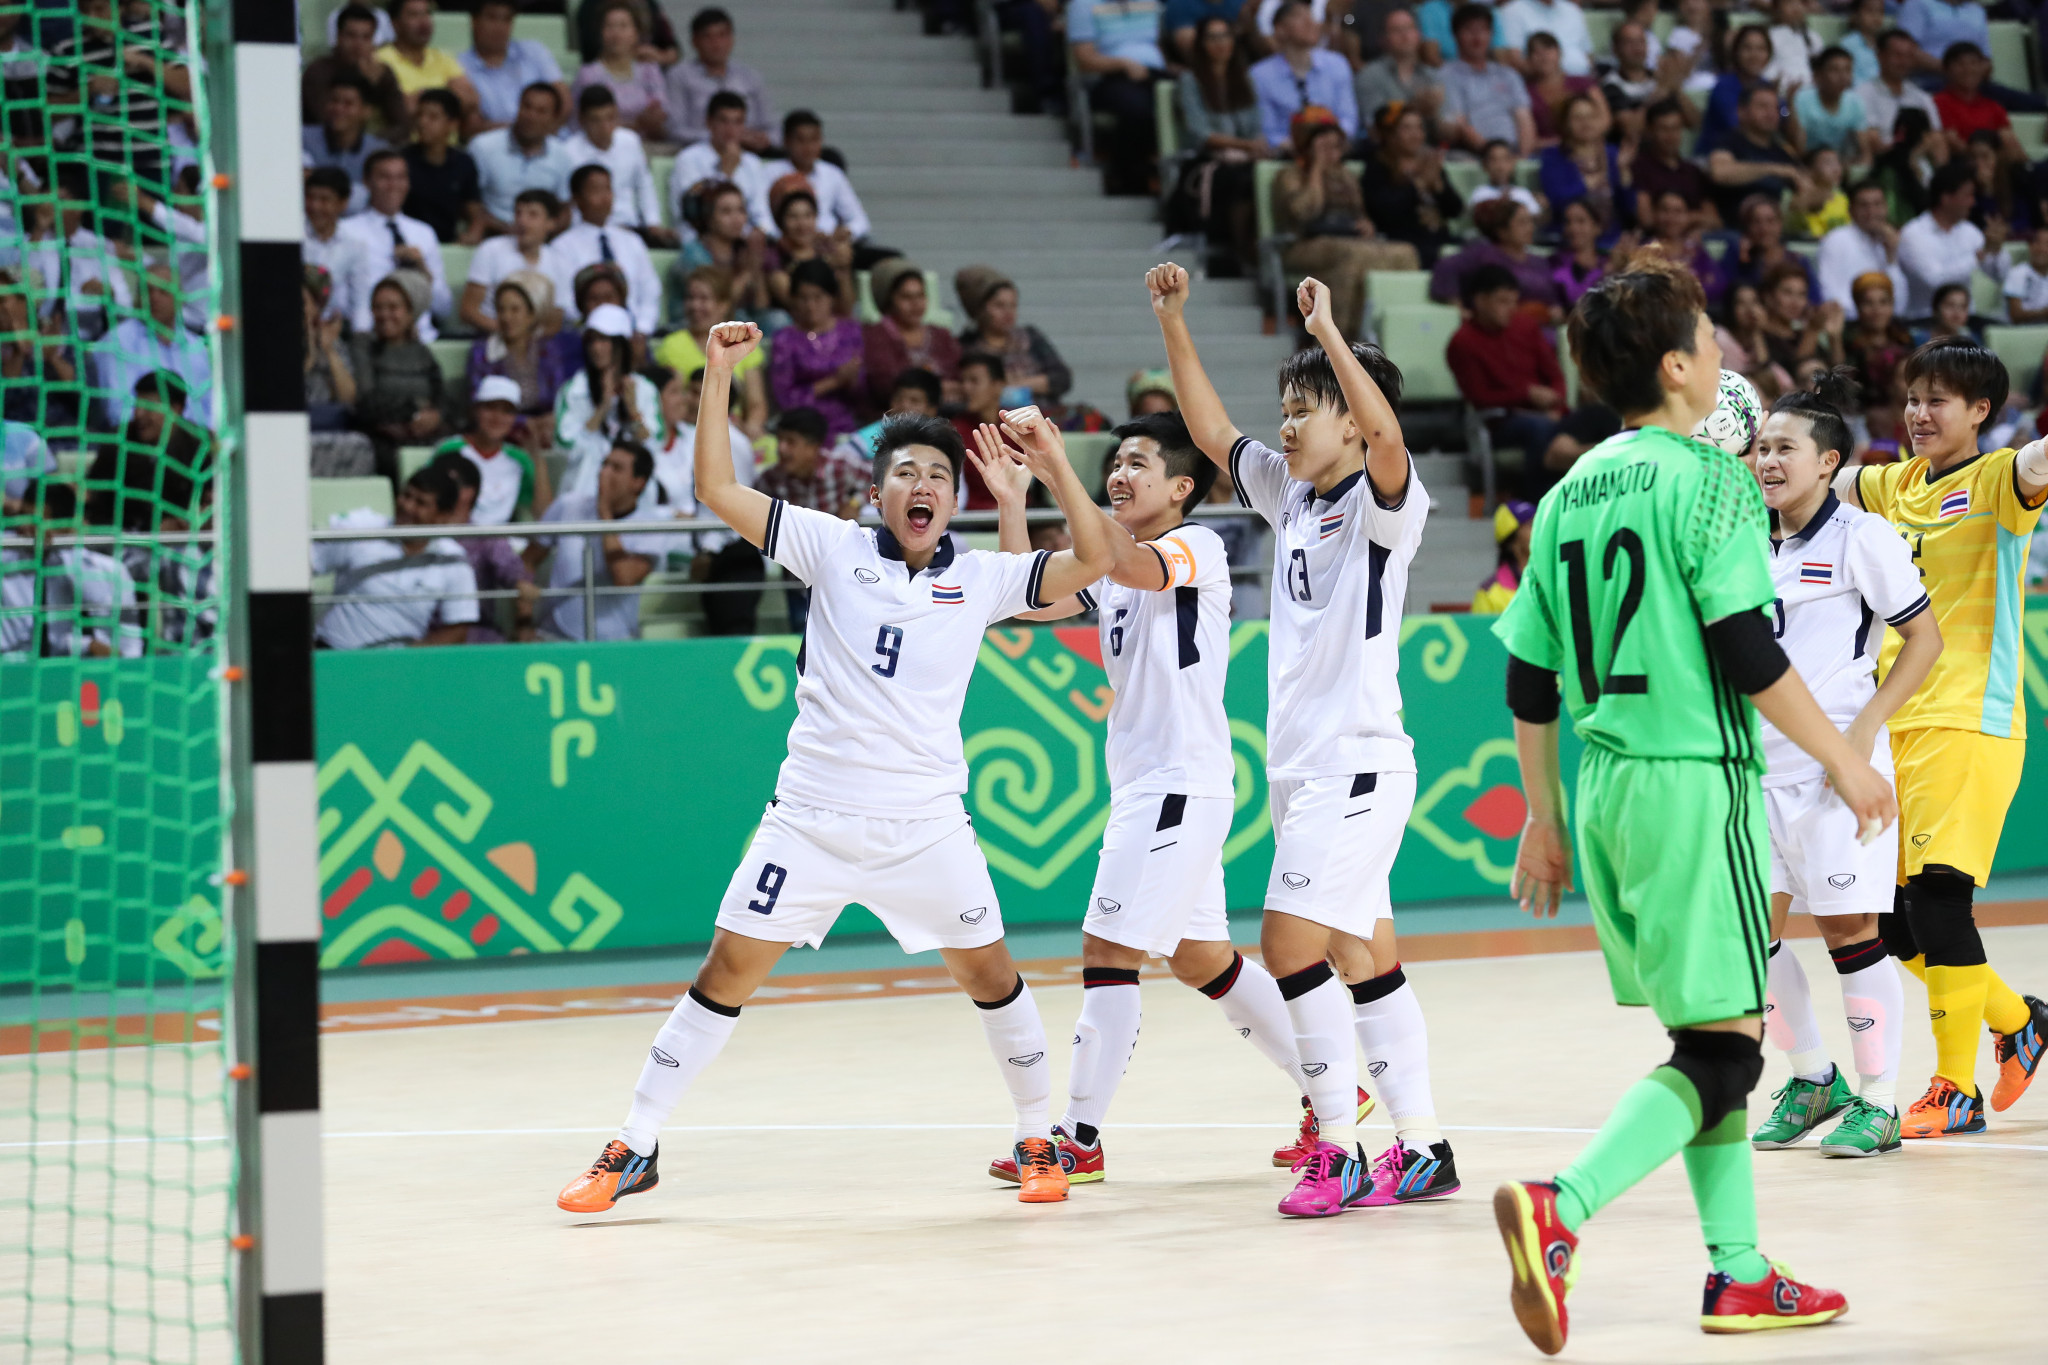 Thailand claimed the women's futsal title on day 10 of the 2017 Asian Indoor and Martial Arts Games ©Ashgabat 2017/Nikita Bassov/Laurel International Management